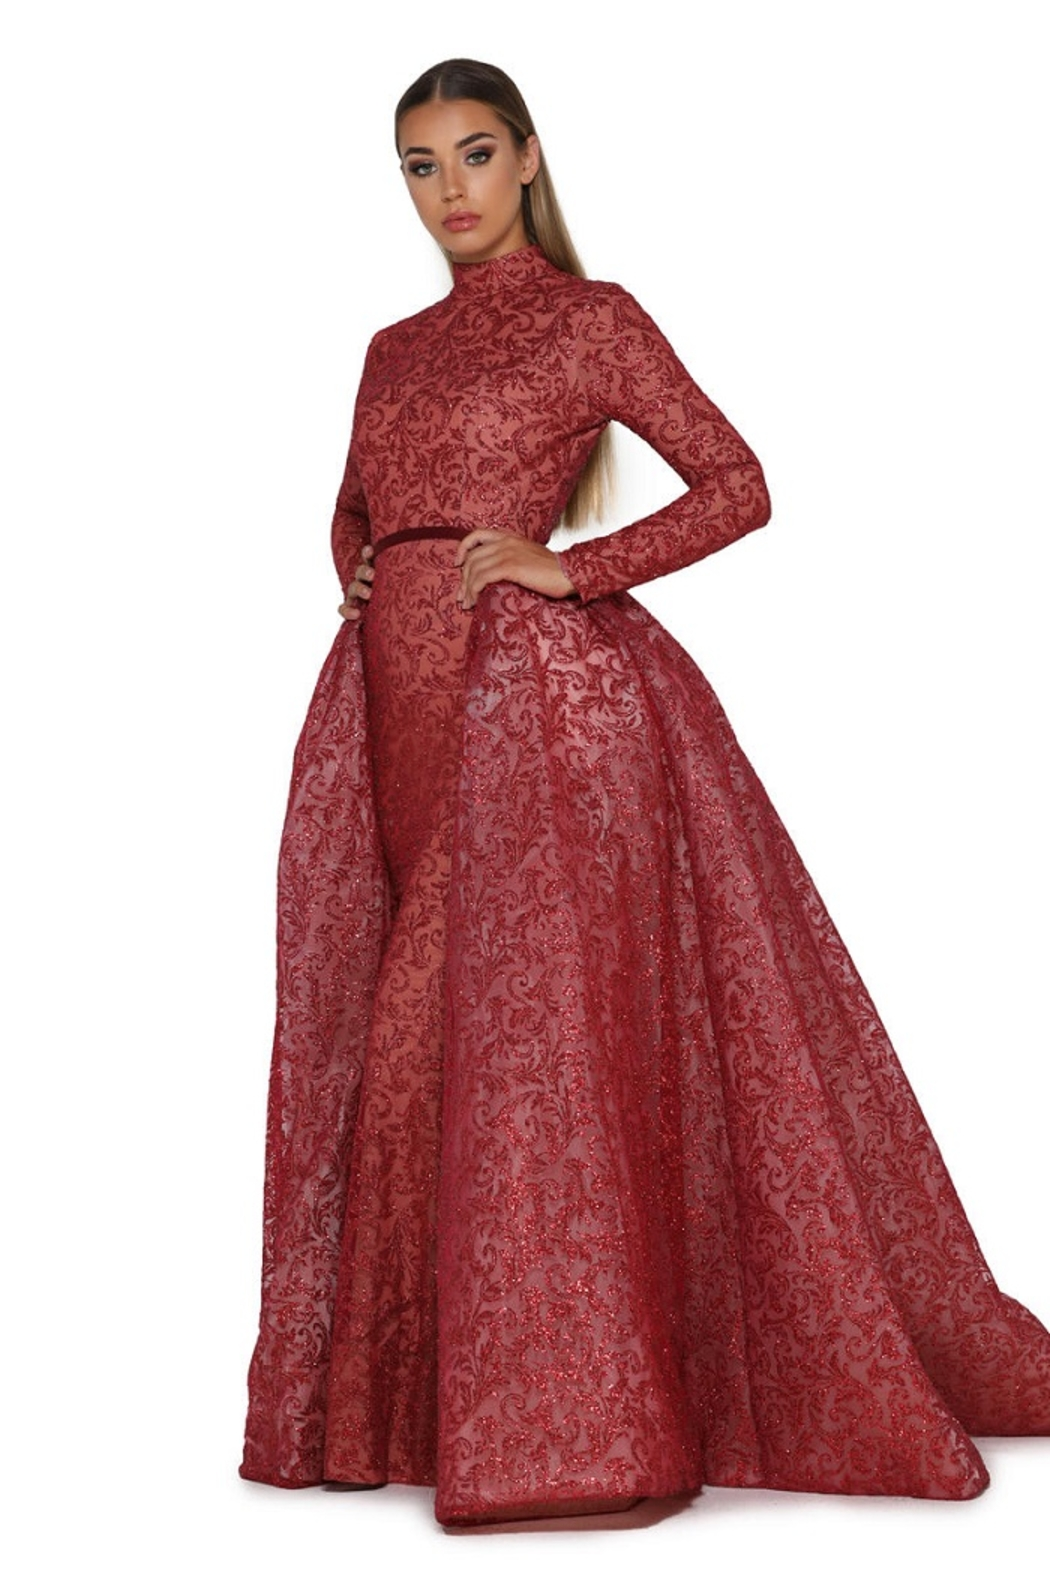 PORTIA AND SCARLETT Red Long Sleeve Glitter Long Formal Dress With Detachable Train - Main Image